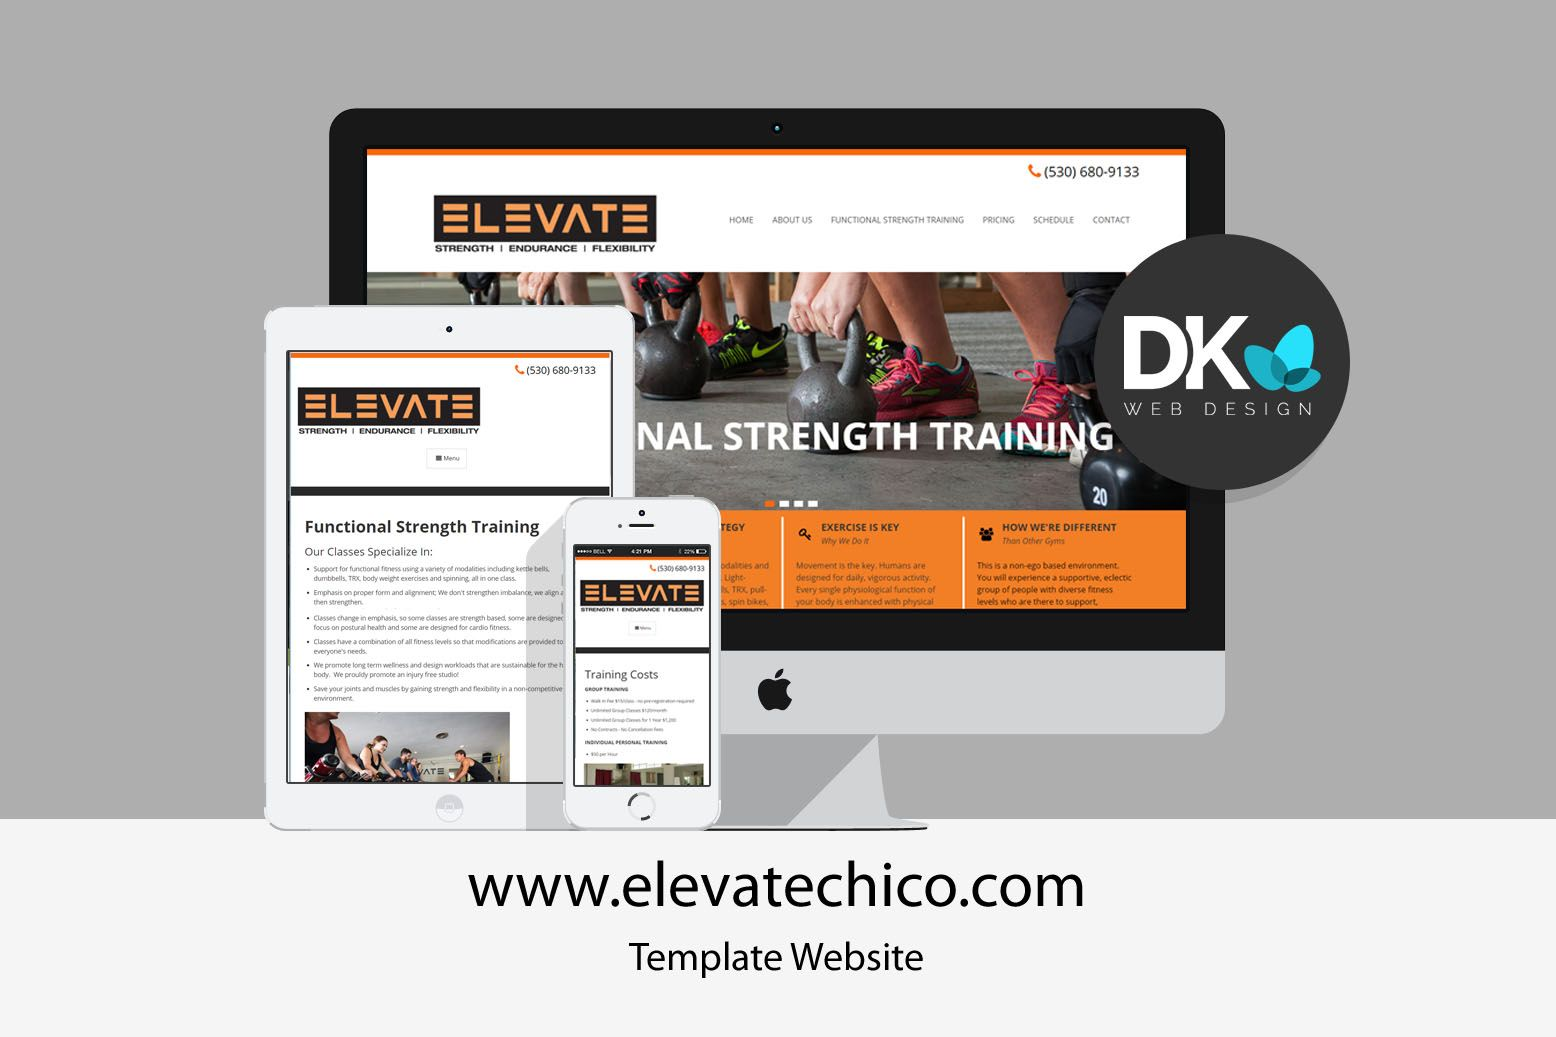 Template Website Design Elevate Chico Website Template Design Website Template Website Design